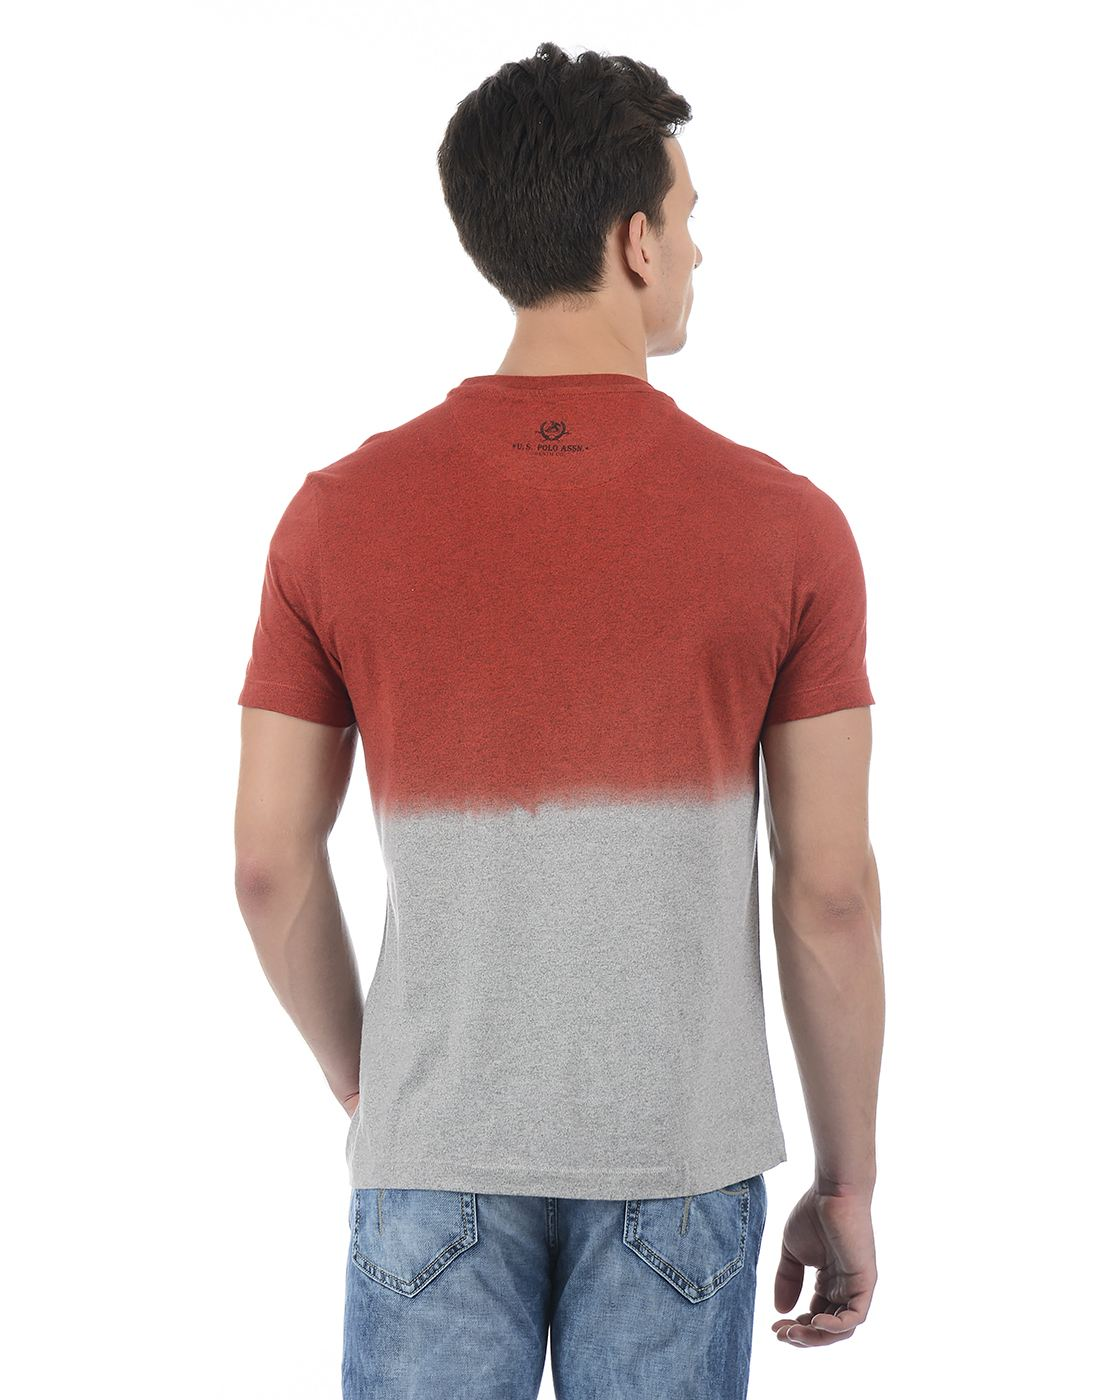 U.S. Polo Assn. Men Casual T-shirt